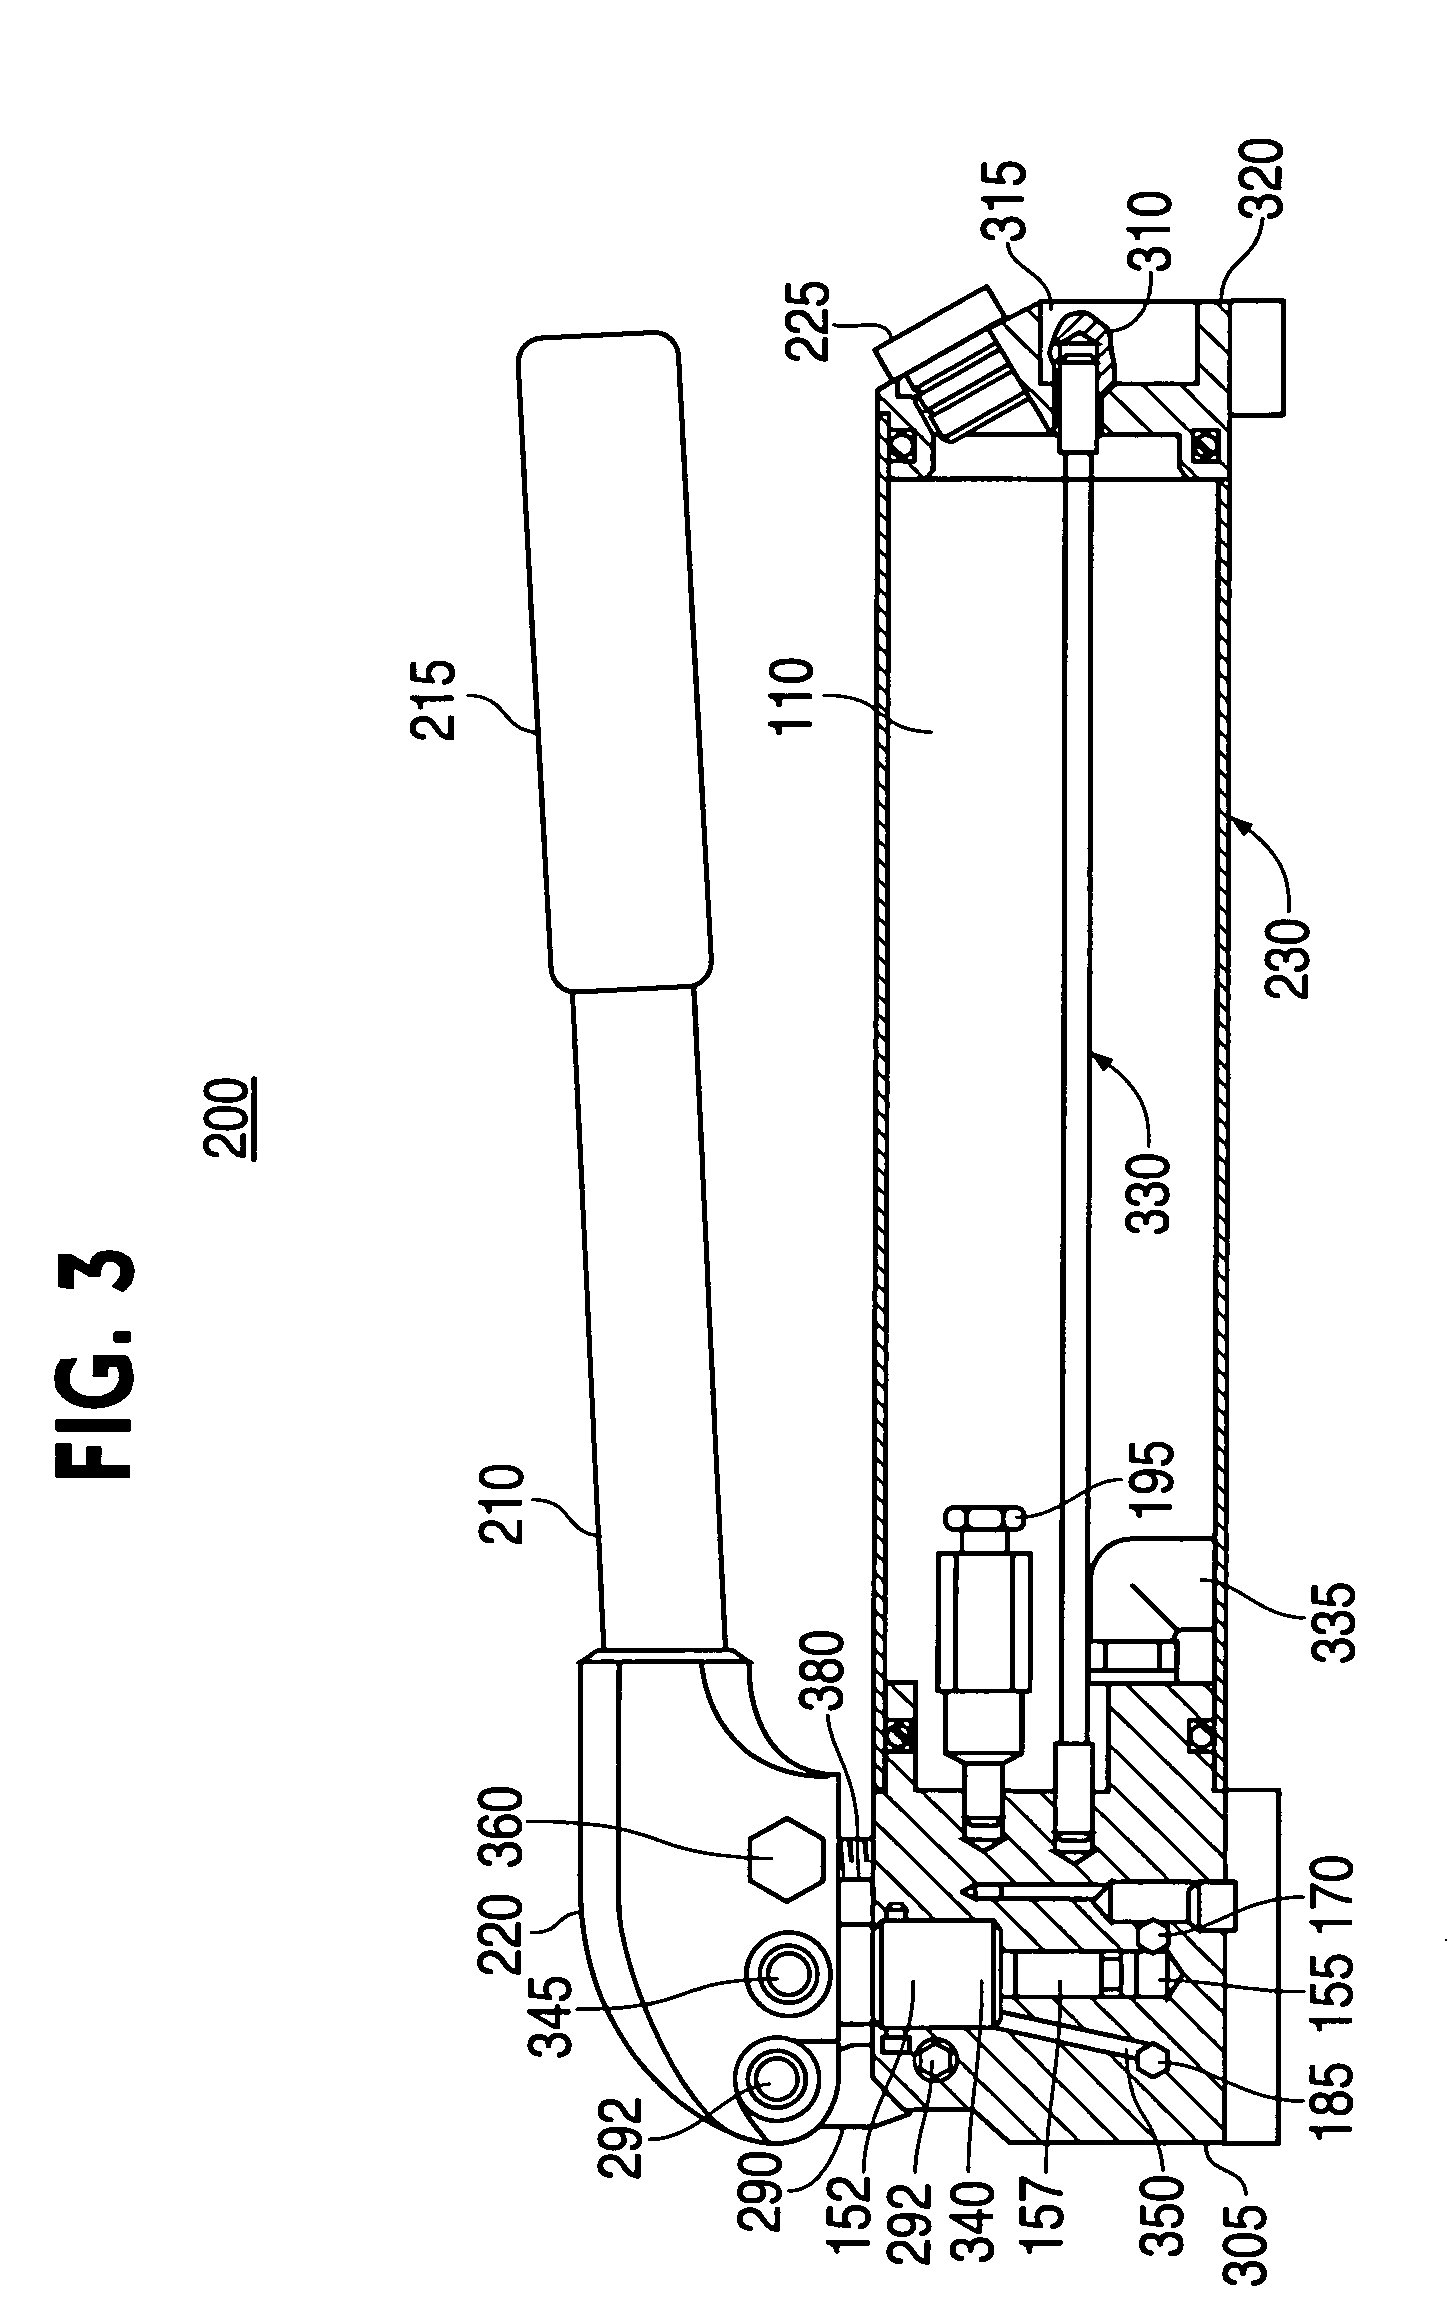 Working Diagram Of Hydraulic Hand Pump 38 Wiring Images Schematic Us07316177 20080108 D00003 Patent Us7316177 With Locking Device Simple At